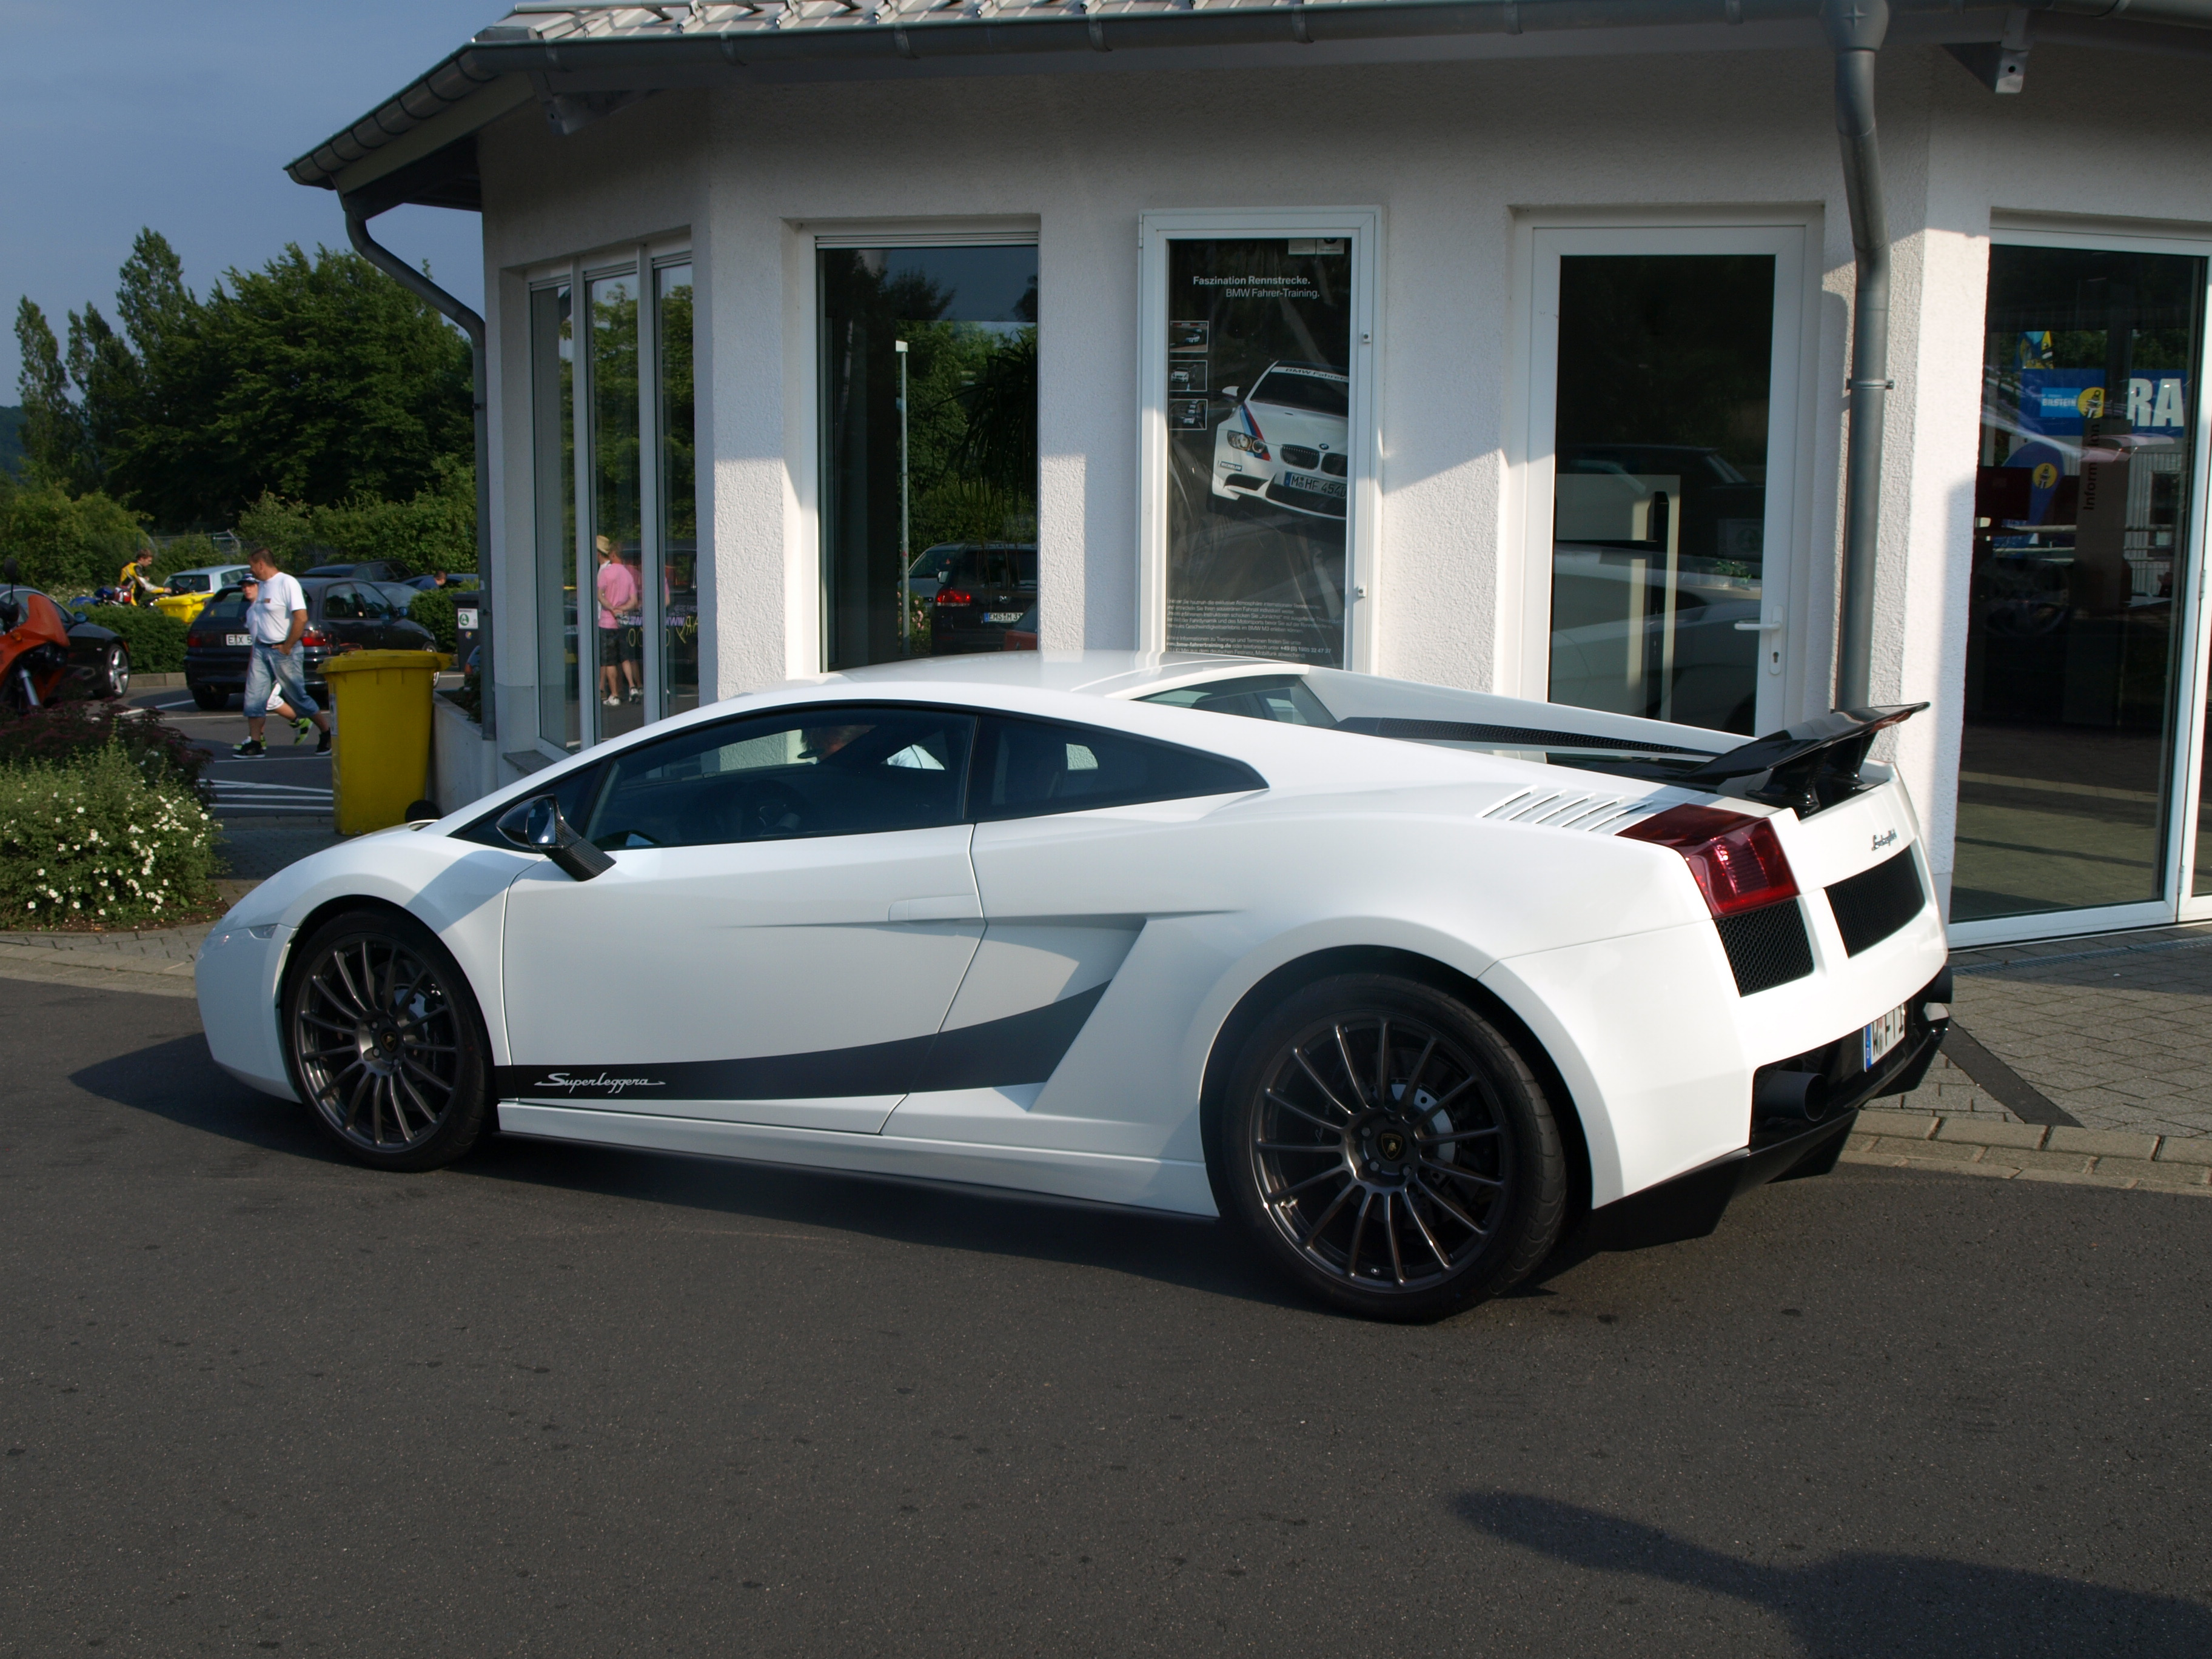 File:White Lambo Gallardo Superleggera rl.jpg